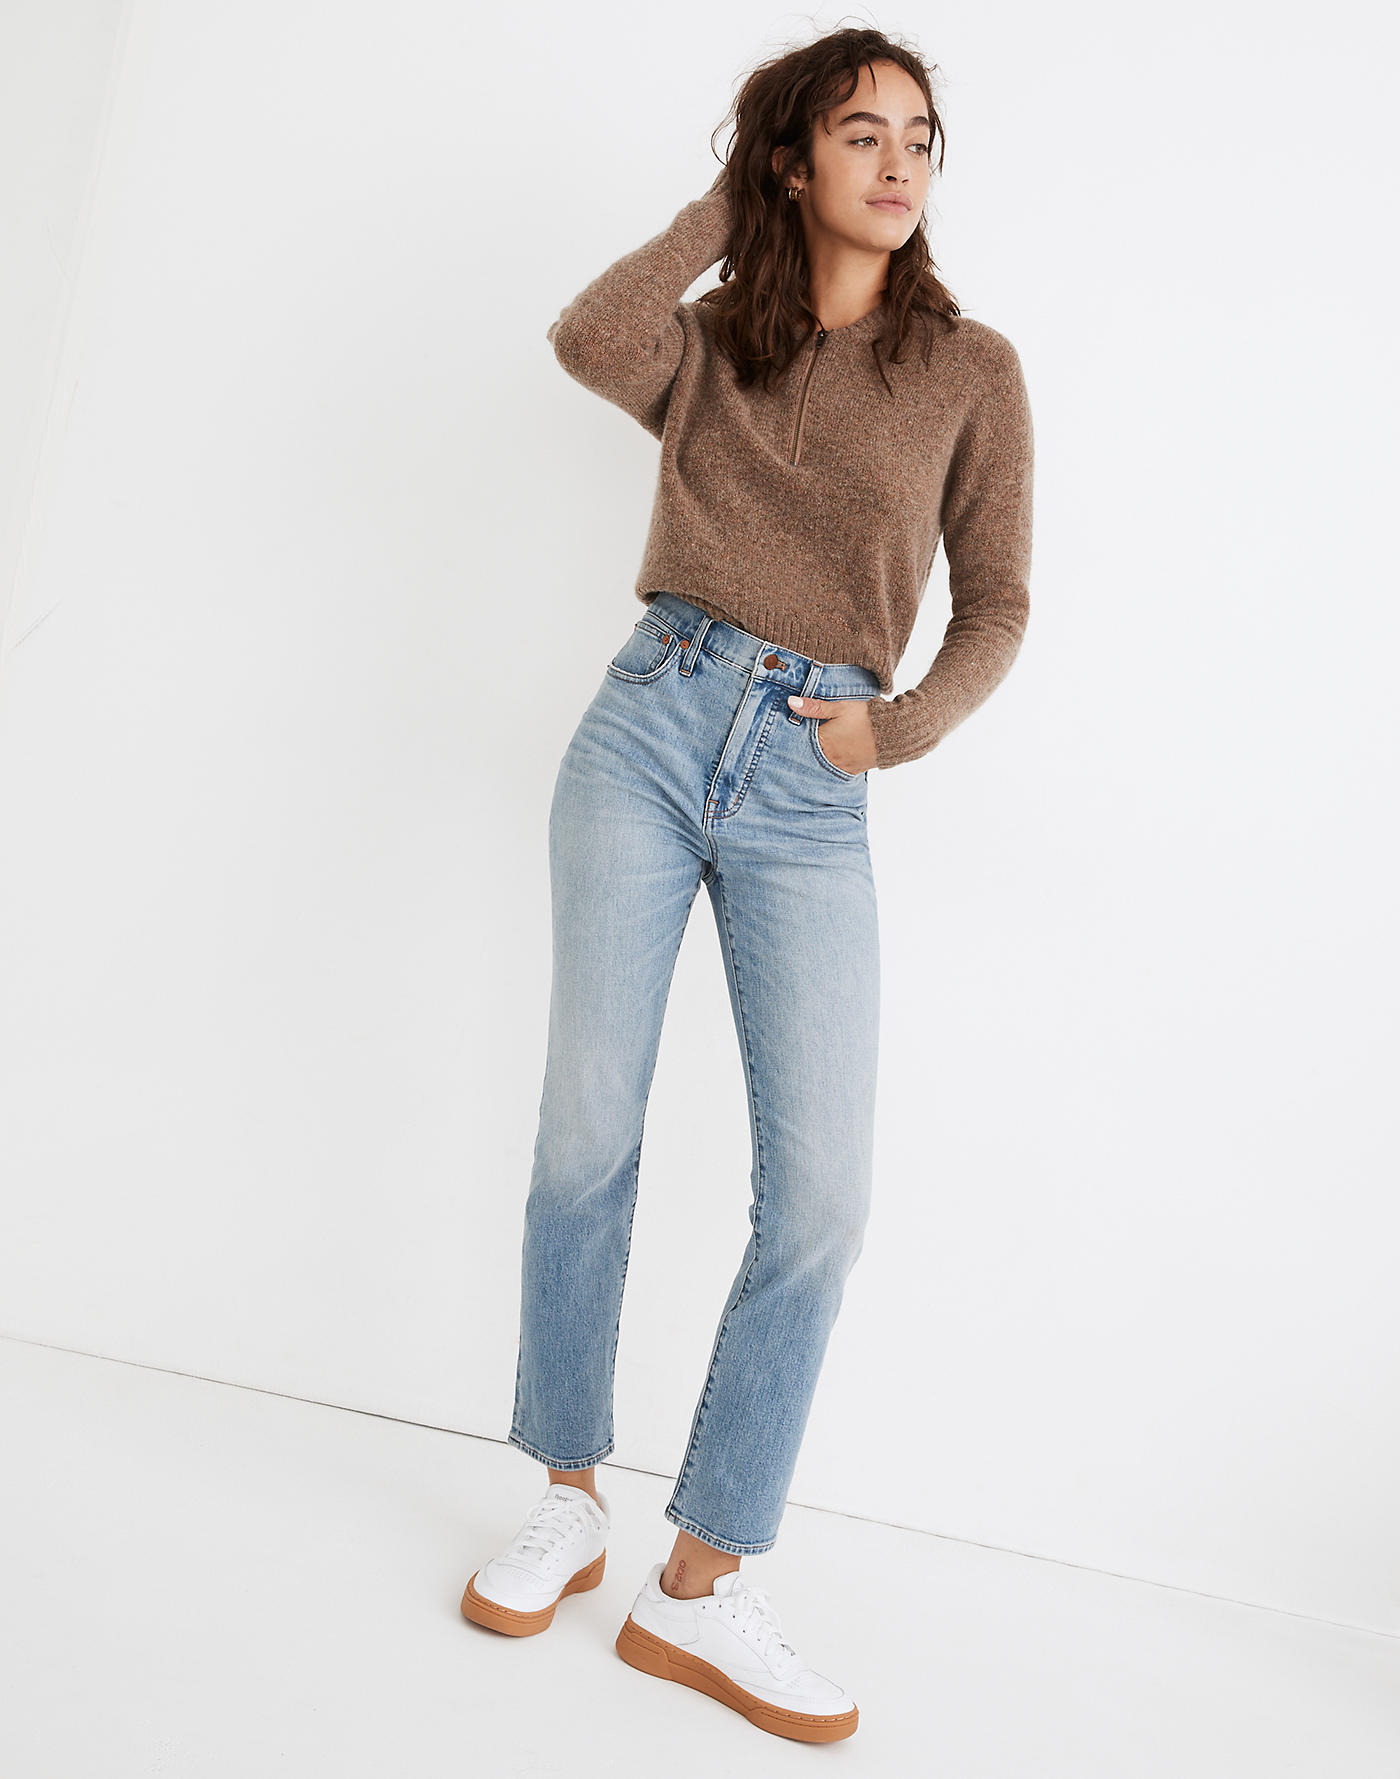 Madewell Slim Demi-Boot Jeans in Denis Wash